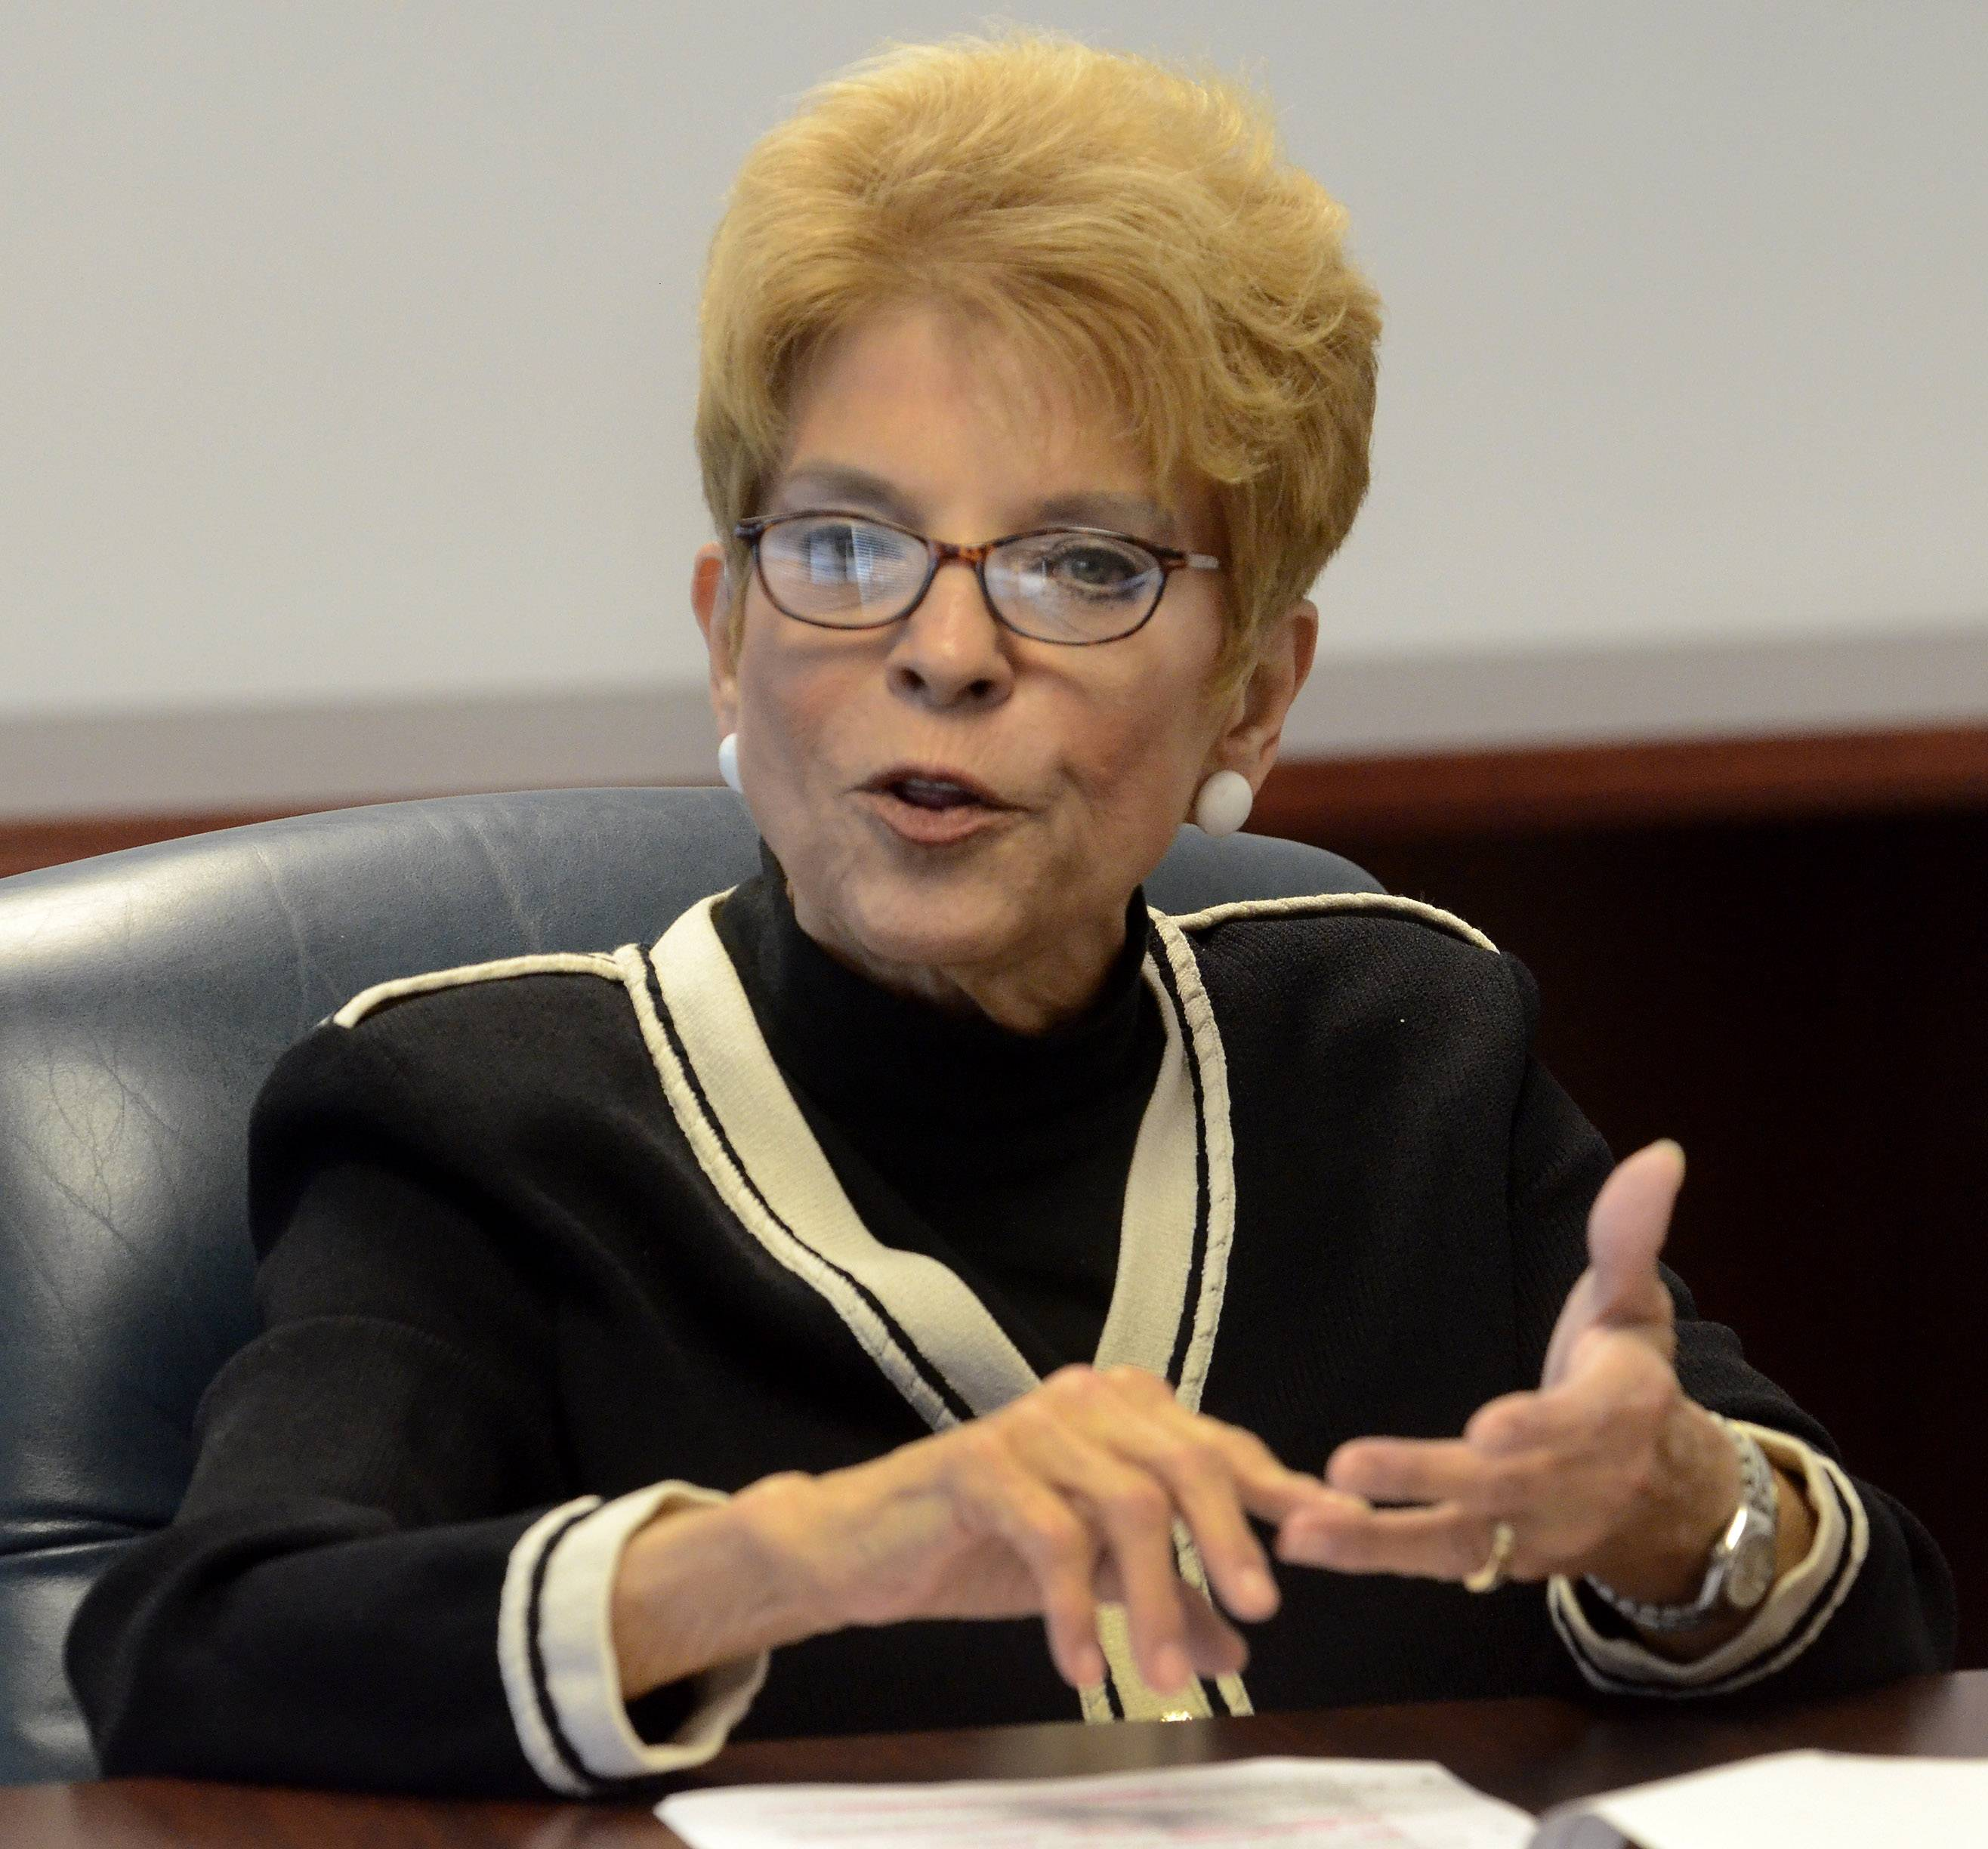 Judy Baar Topinka remembered as good-humored truth-teller